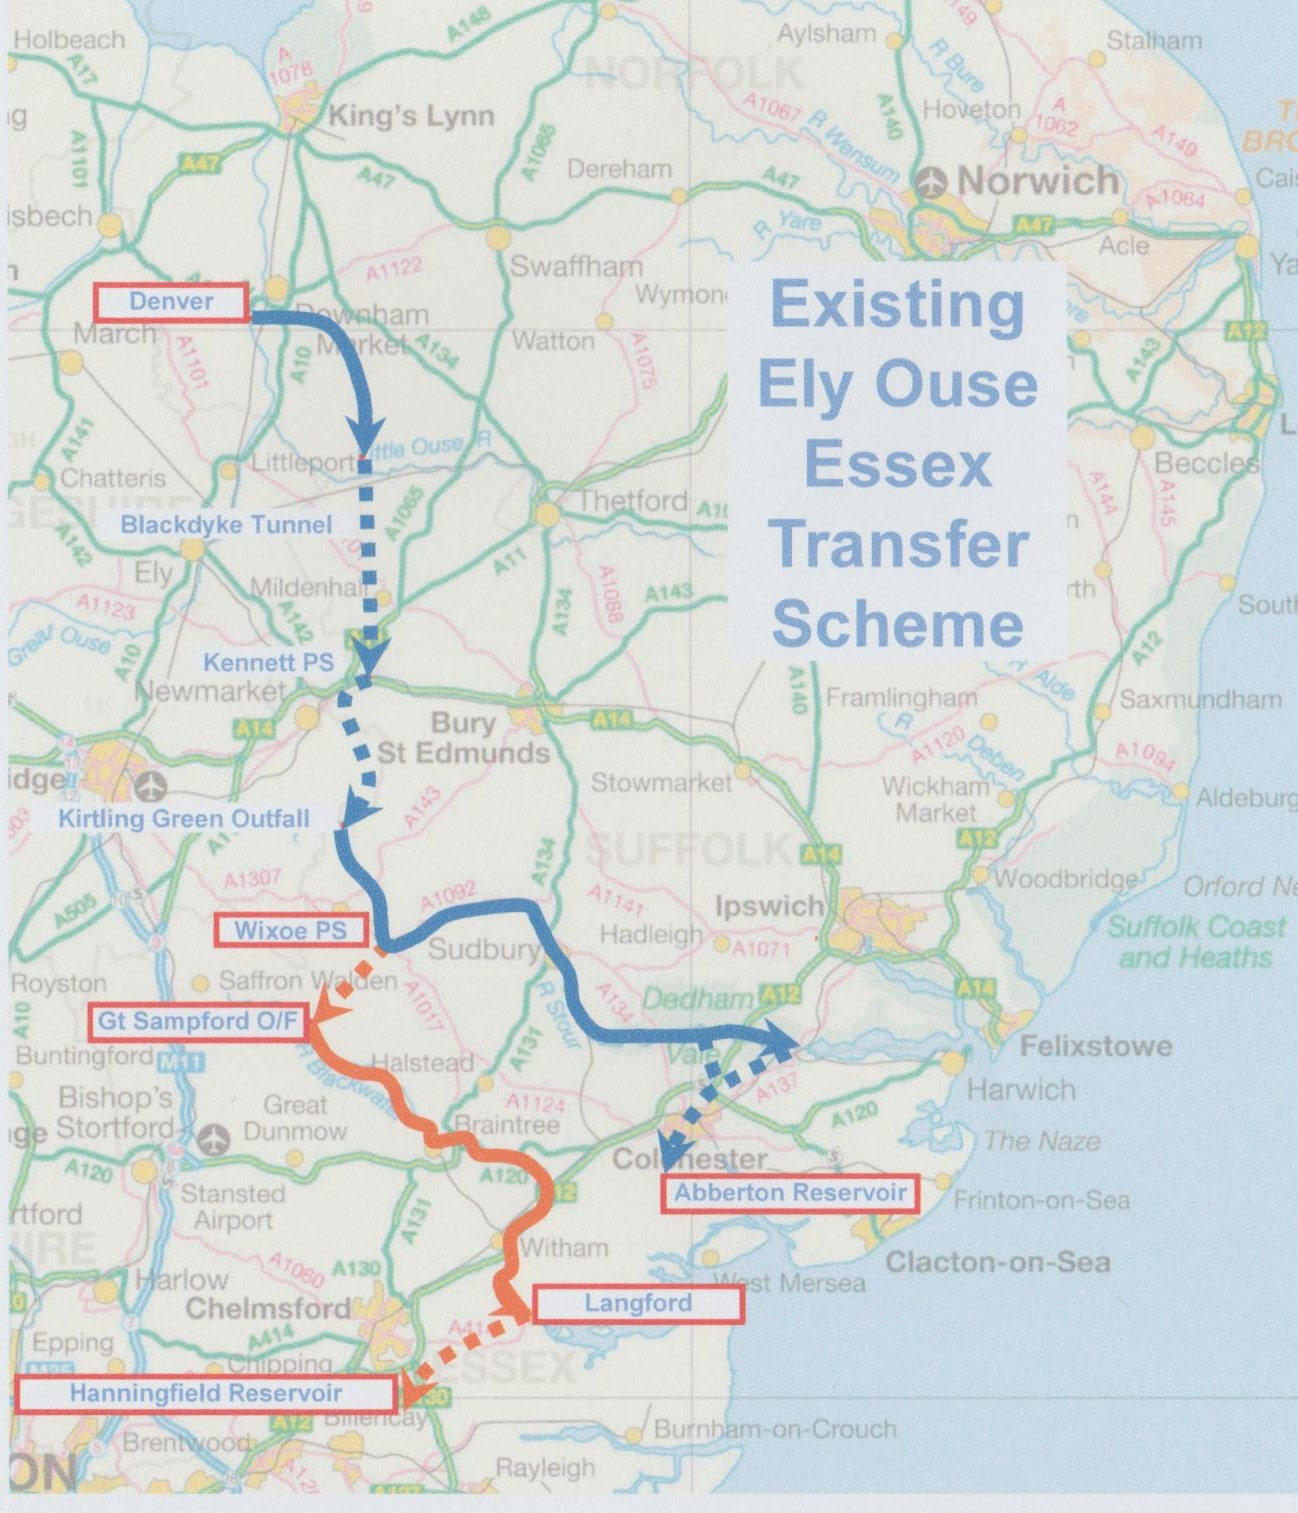 1 ely ouse transfer diagram 001 (2)